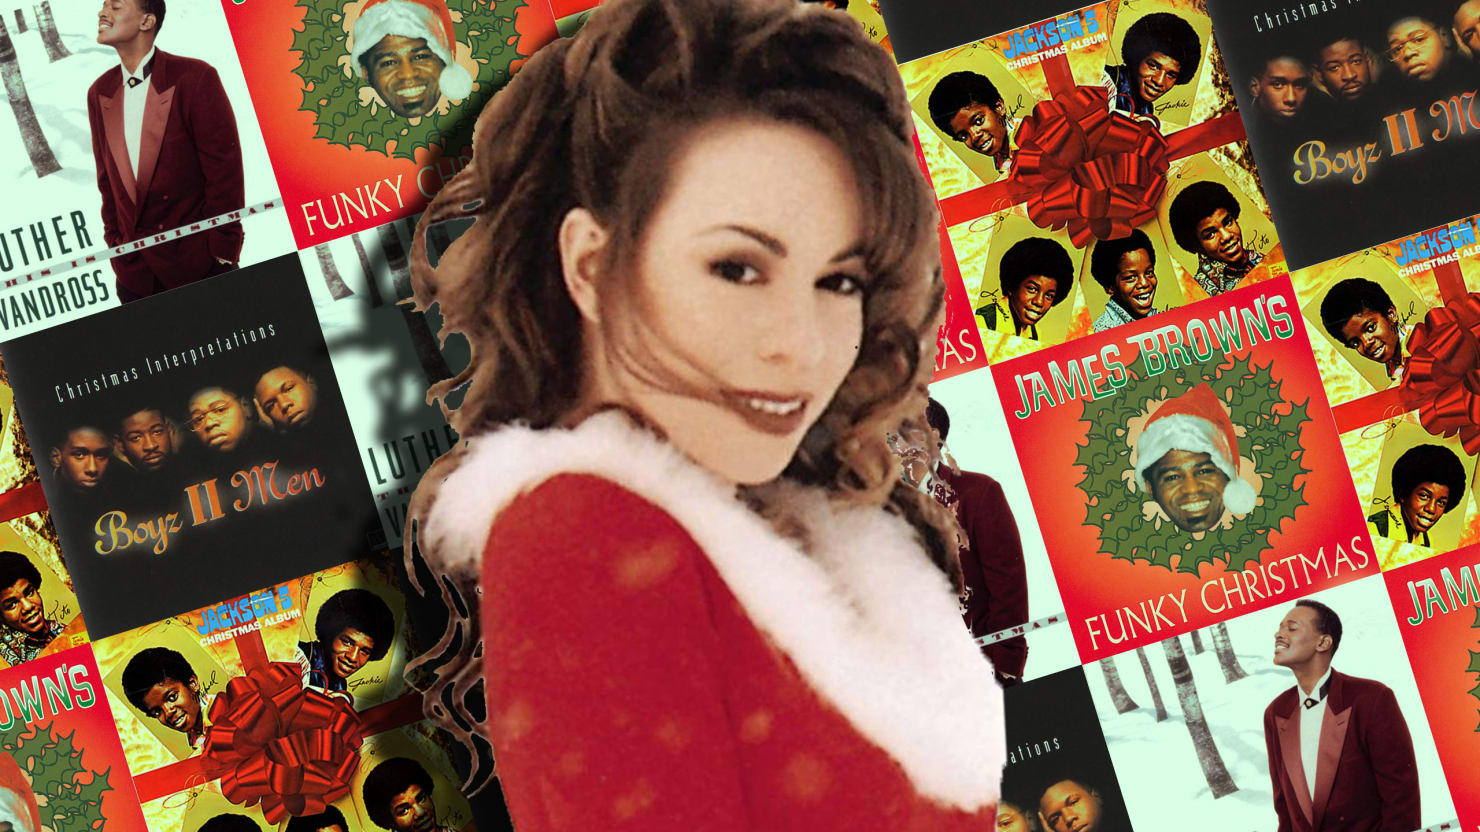 10 best christmas soul and rb albums mariah carey boyz ii men jackson 5 and more - Best Rb Christmas Songs